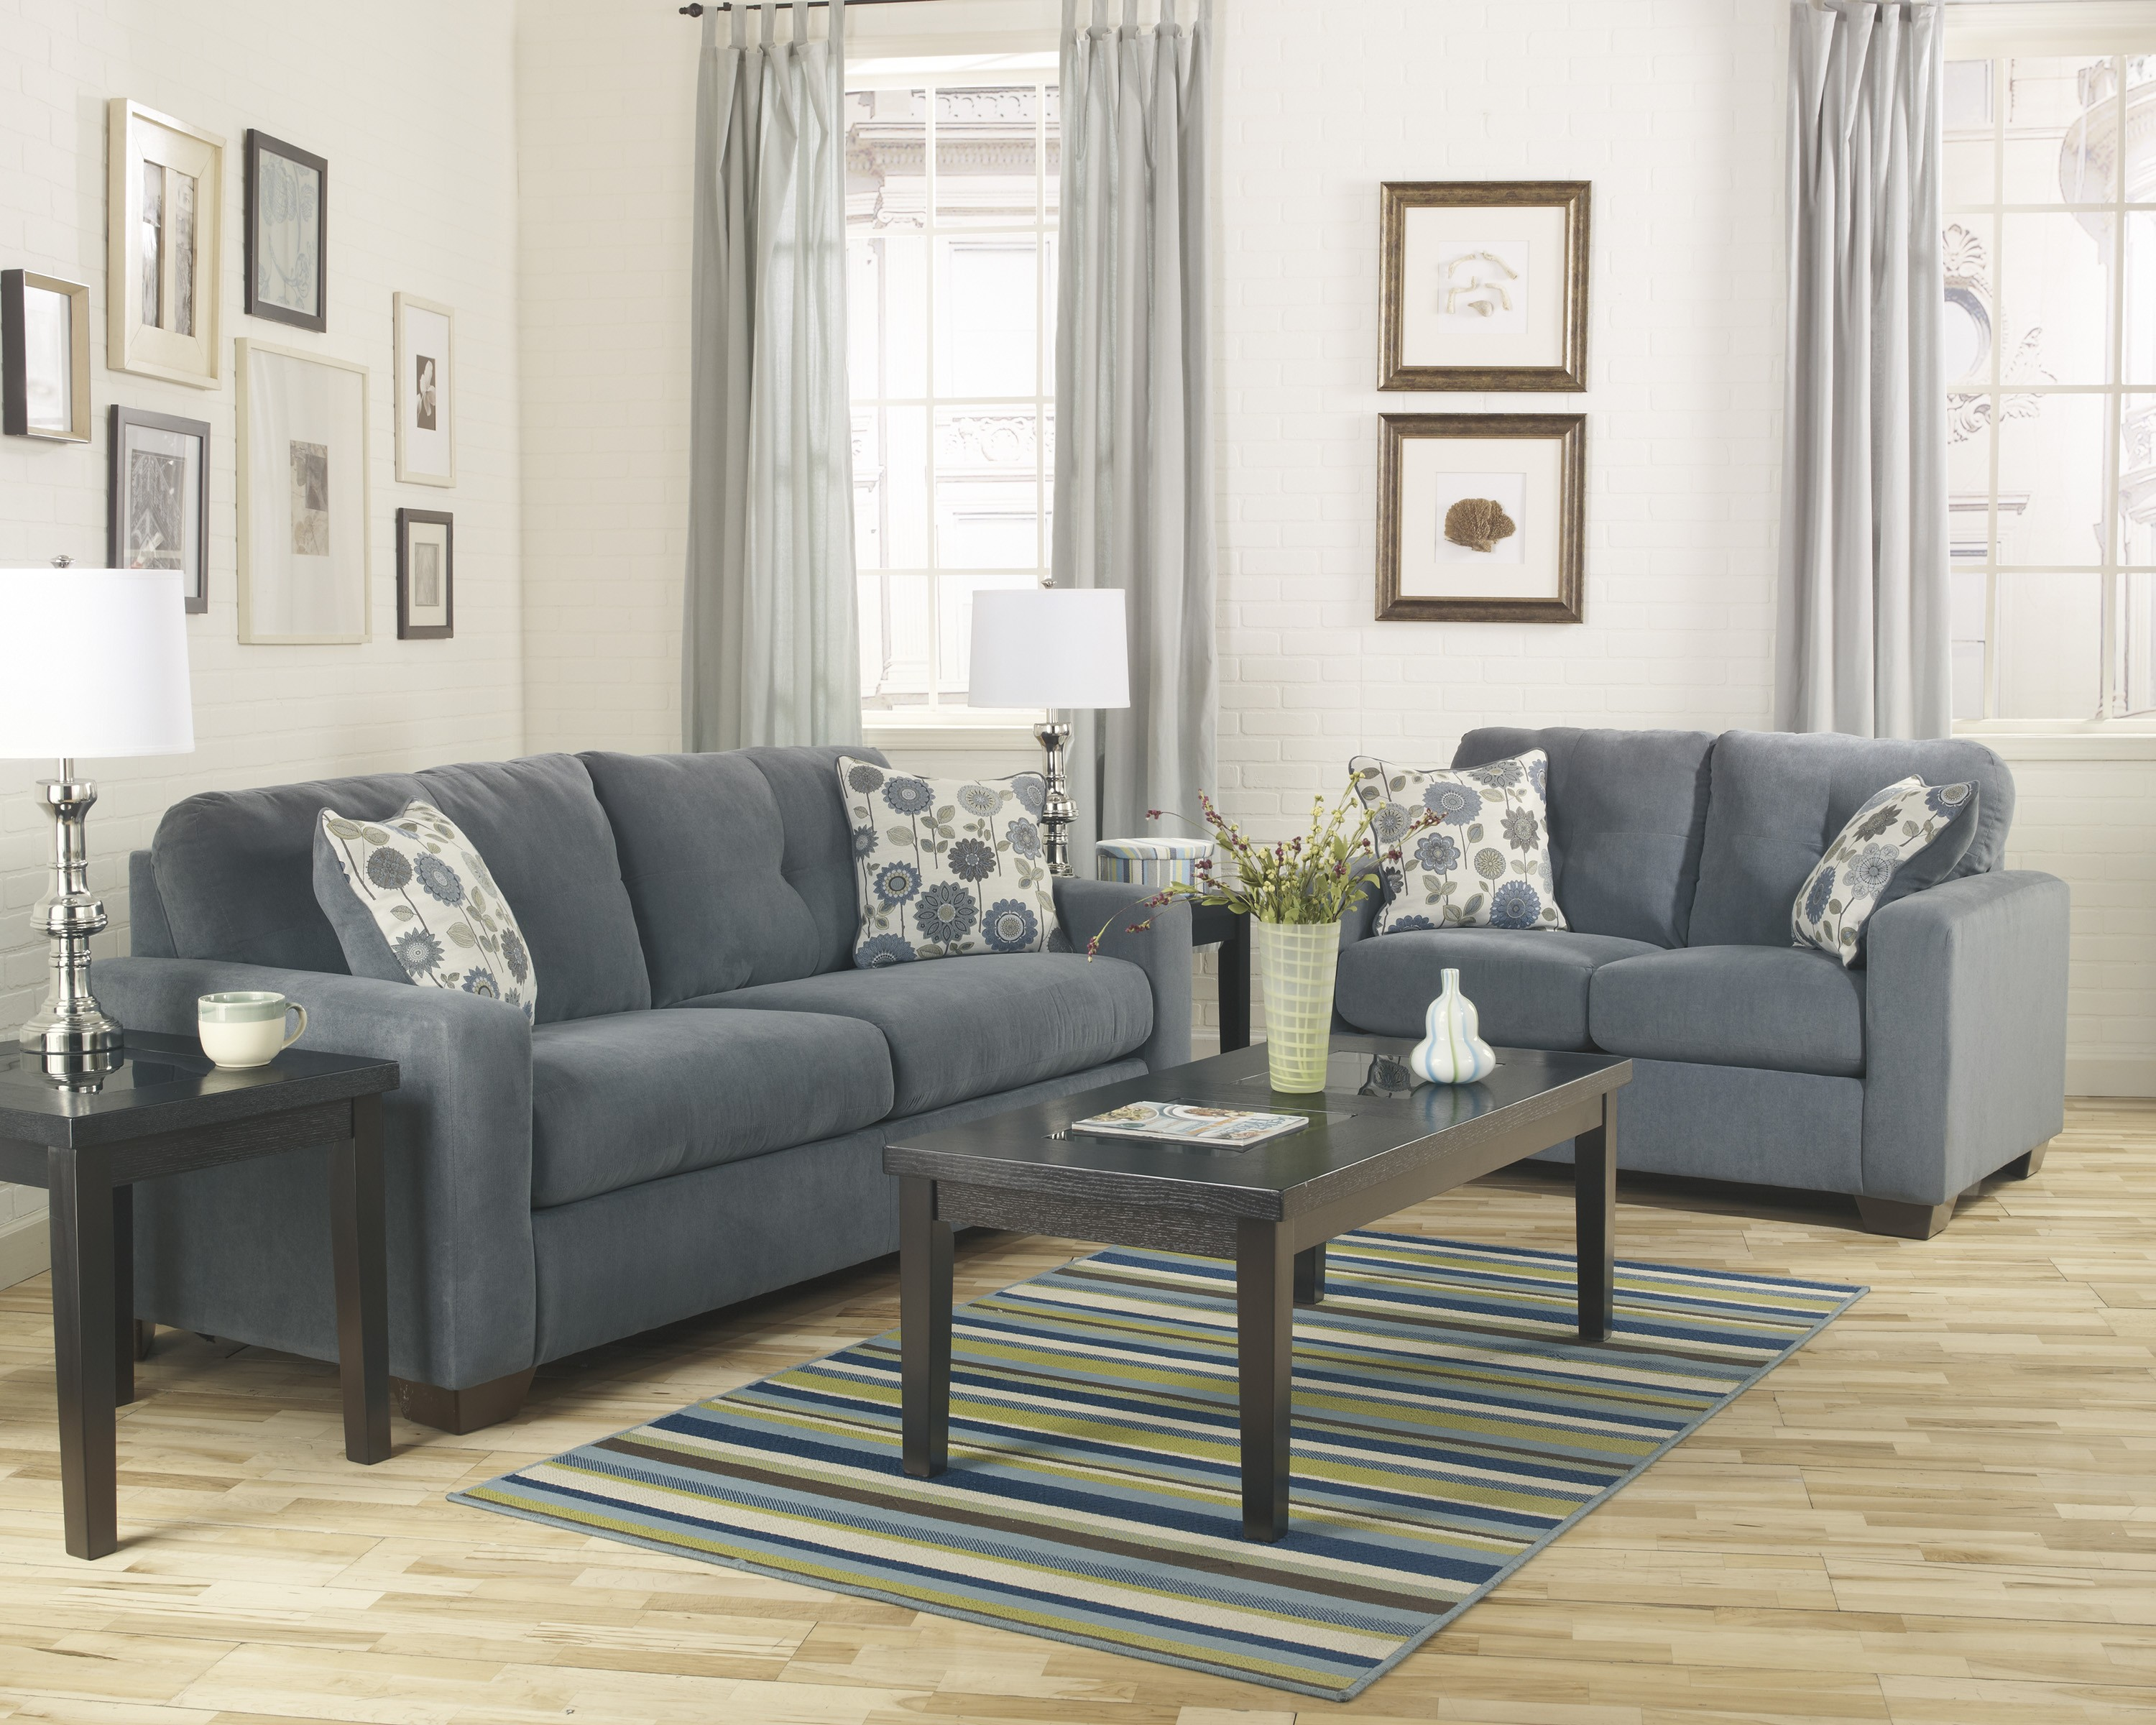 Attractive ashley furniture tucson for home furniture with ashley furniture tucson az